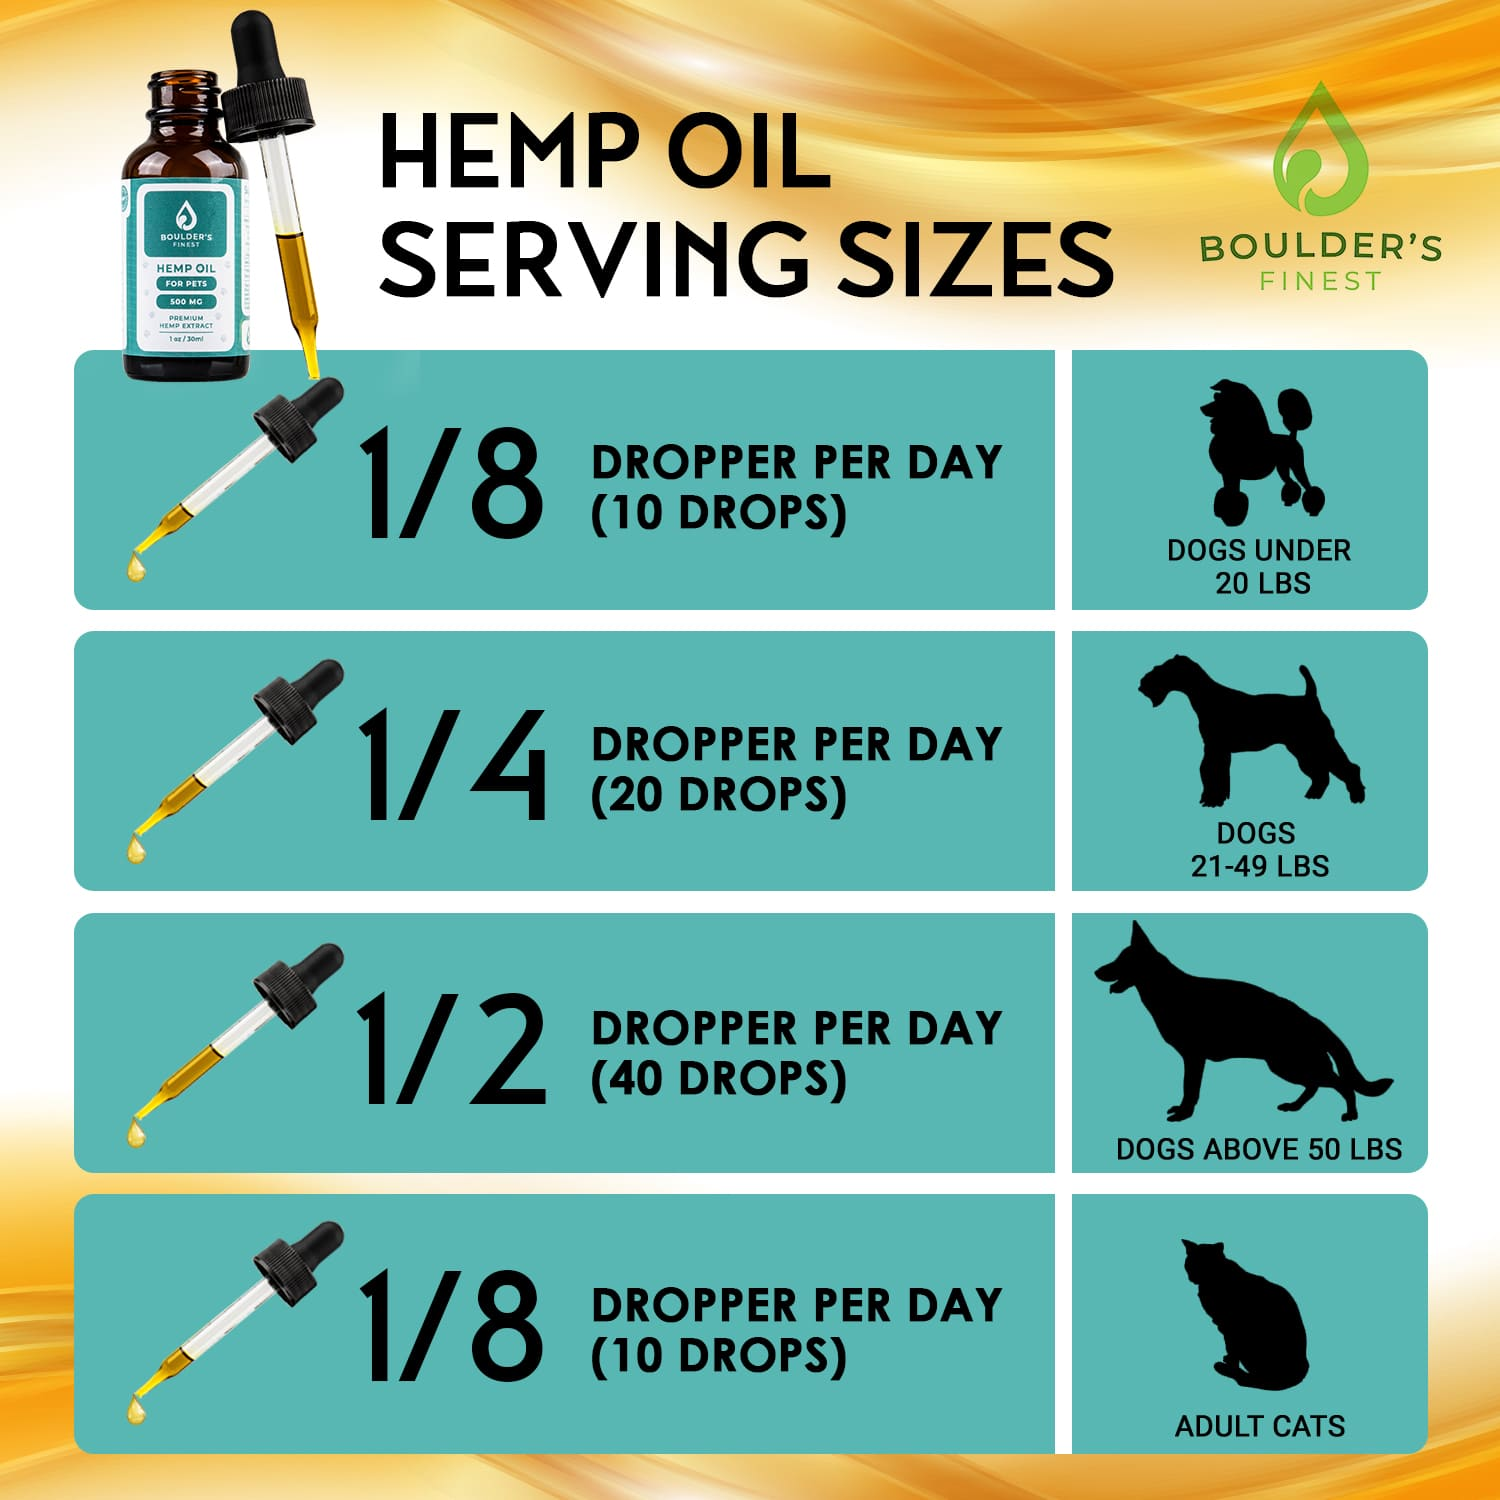 Boulder's Finest Pet Hemp Oil 500MG